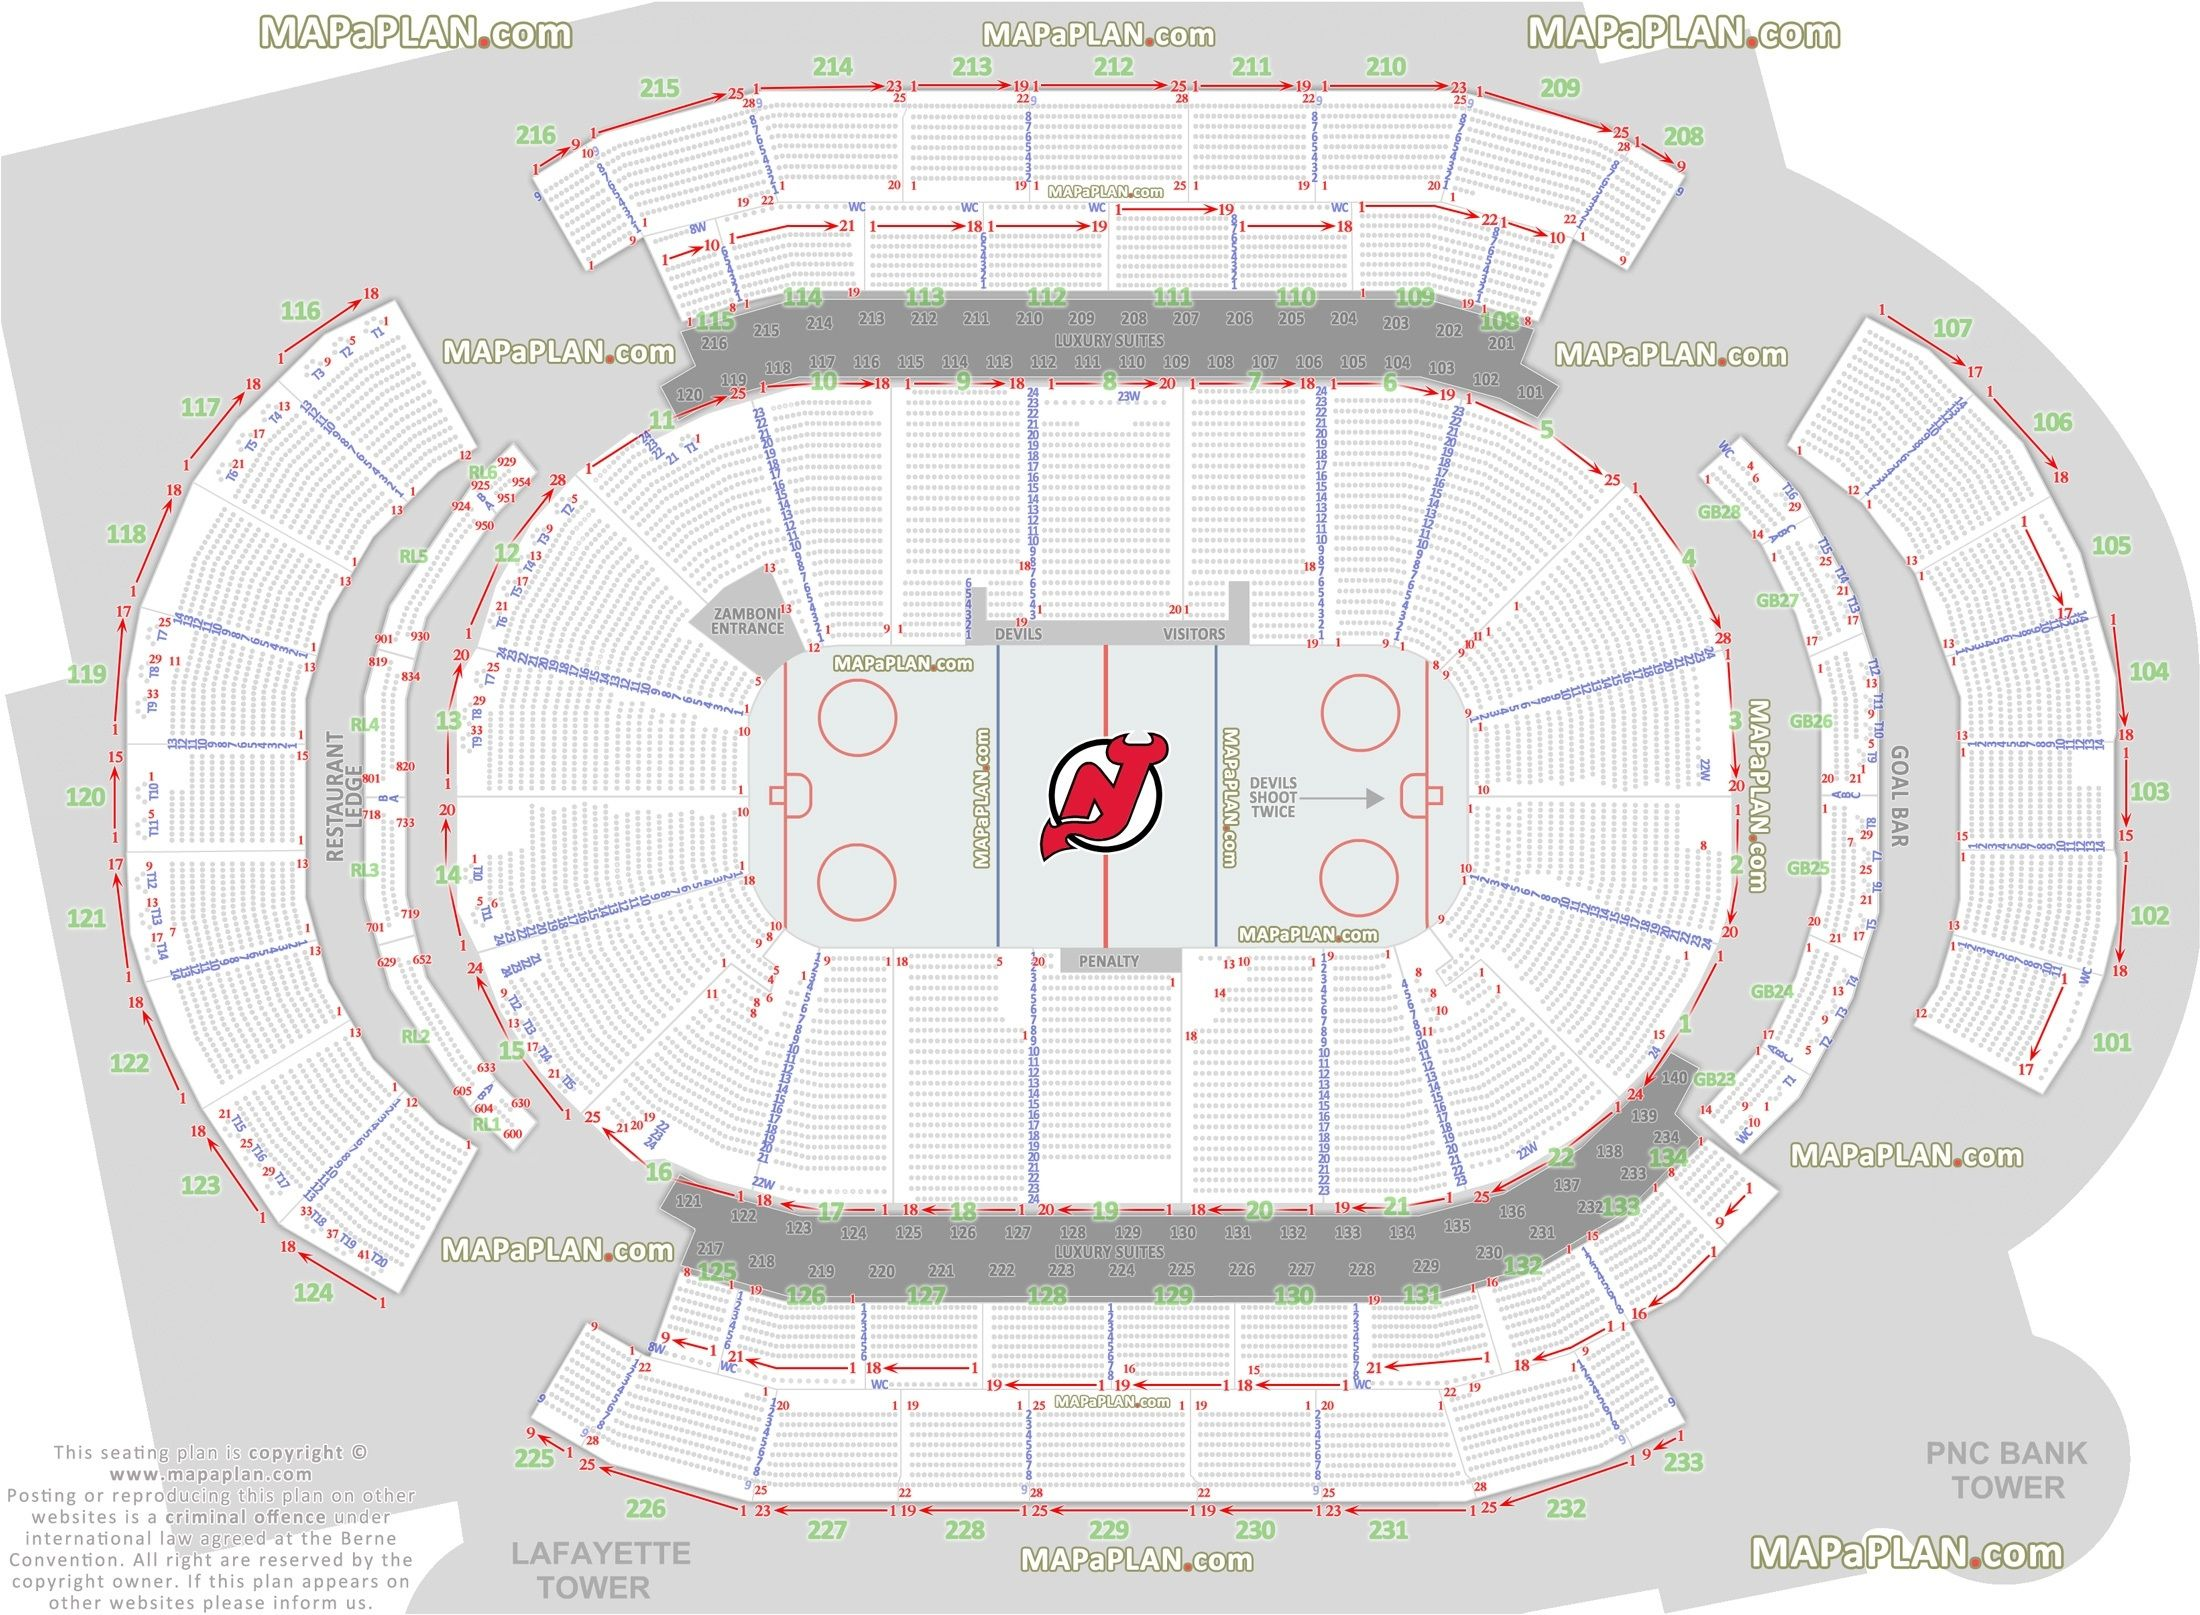 Prudential Center Newark Arena Seat And Row Numbers Detailed Pertaining To Devils Seating Chart24187 Seating Charts Disney On Ice Seating Plan